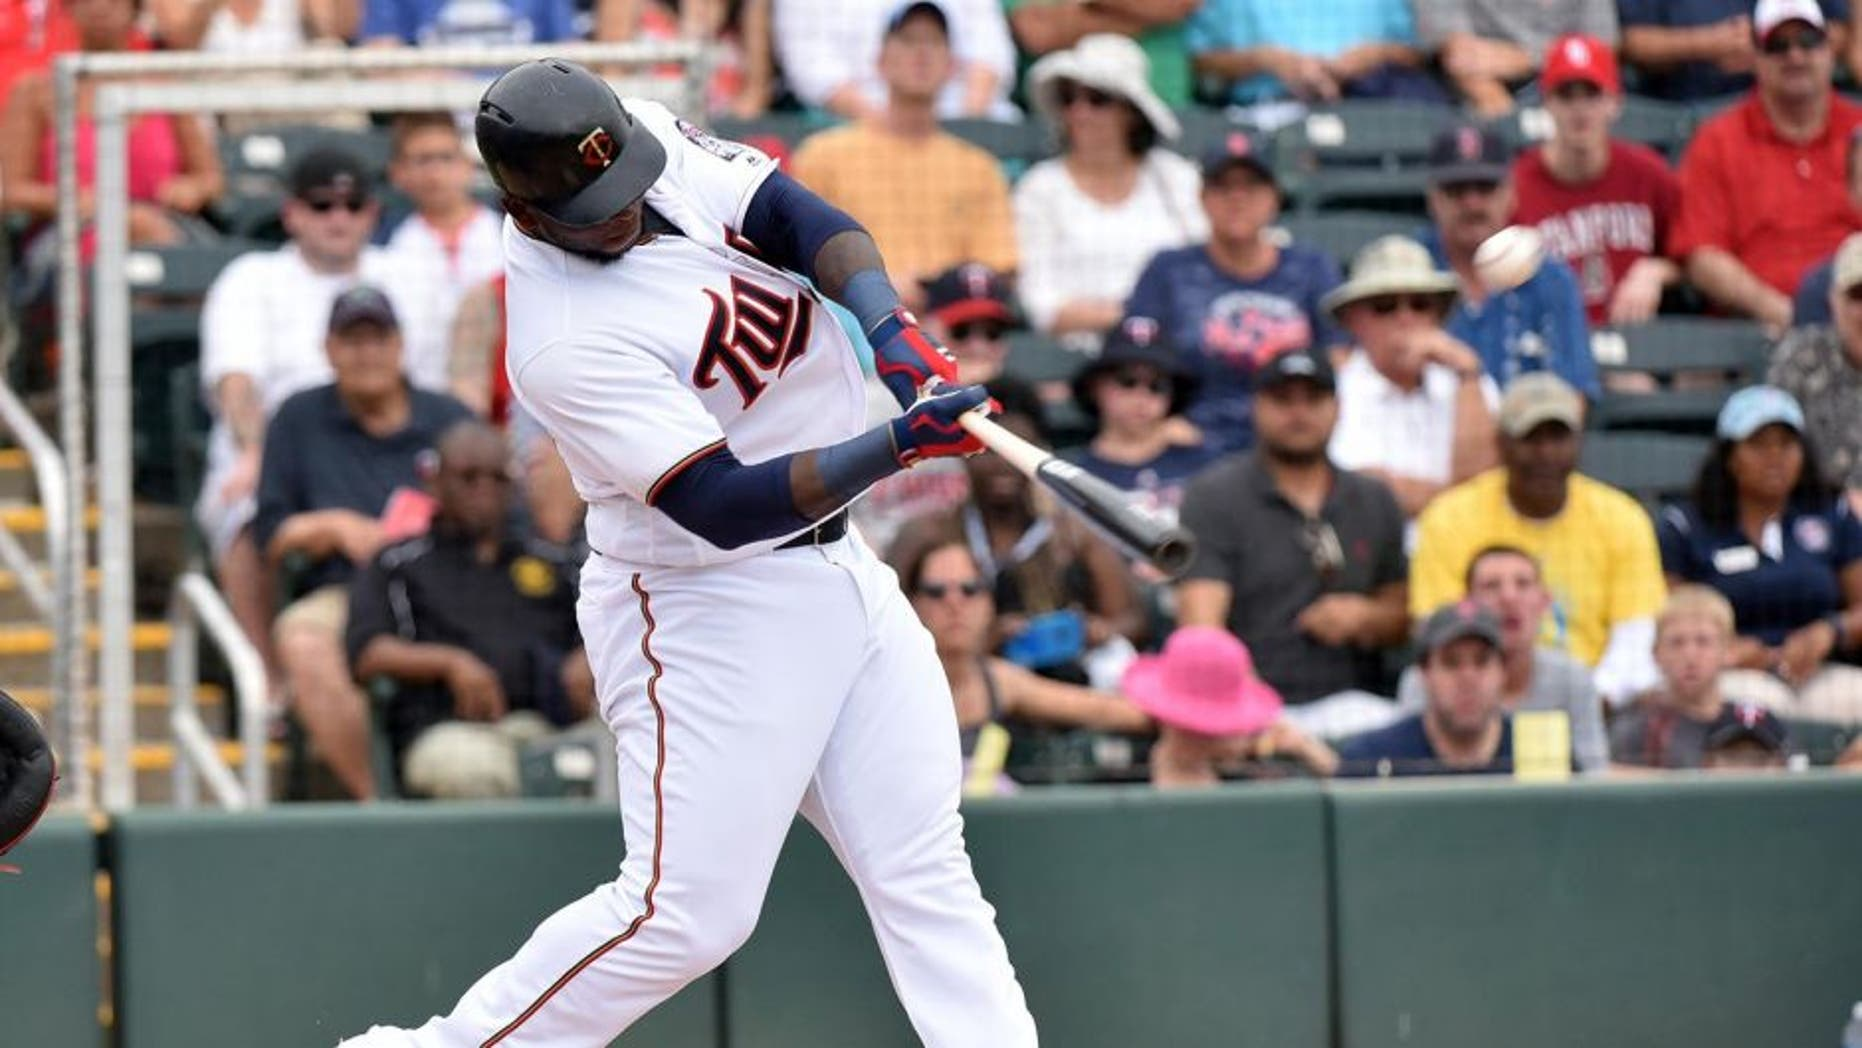 Mar 29, 2016; Fort Myers, FL, USA; Minnesota Twins right fielder Miguel Sano (22) connects for a solo home run during a spring training game against the Boston Red Sox at CenturyLink Sports Complex. Mandatory Credit: Steve Mitchell-USA TODAY Sports